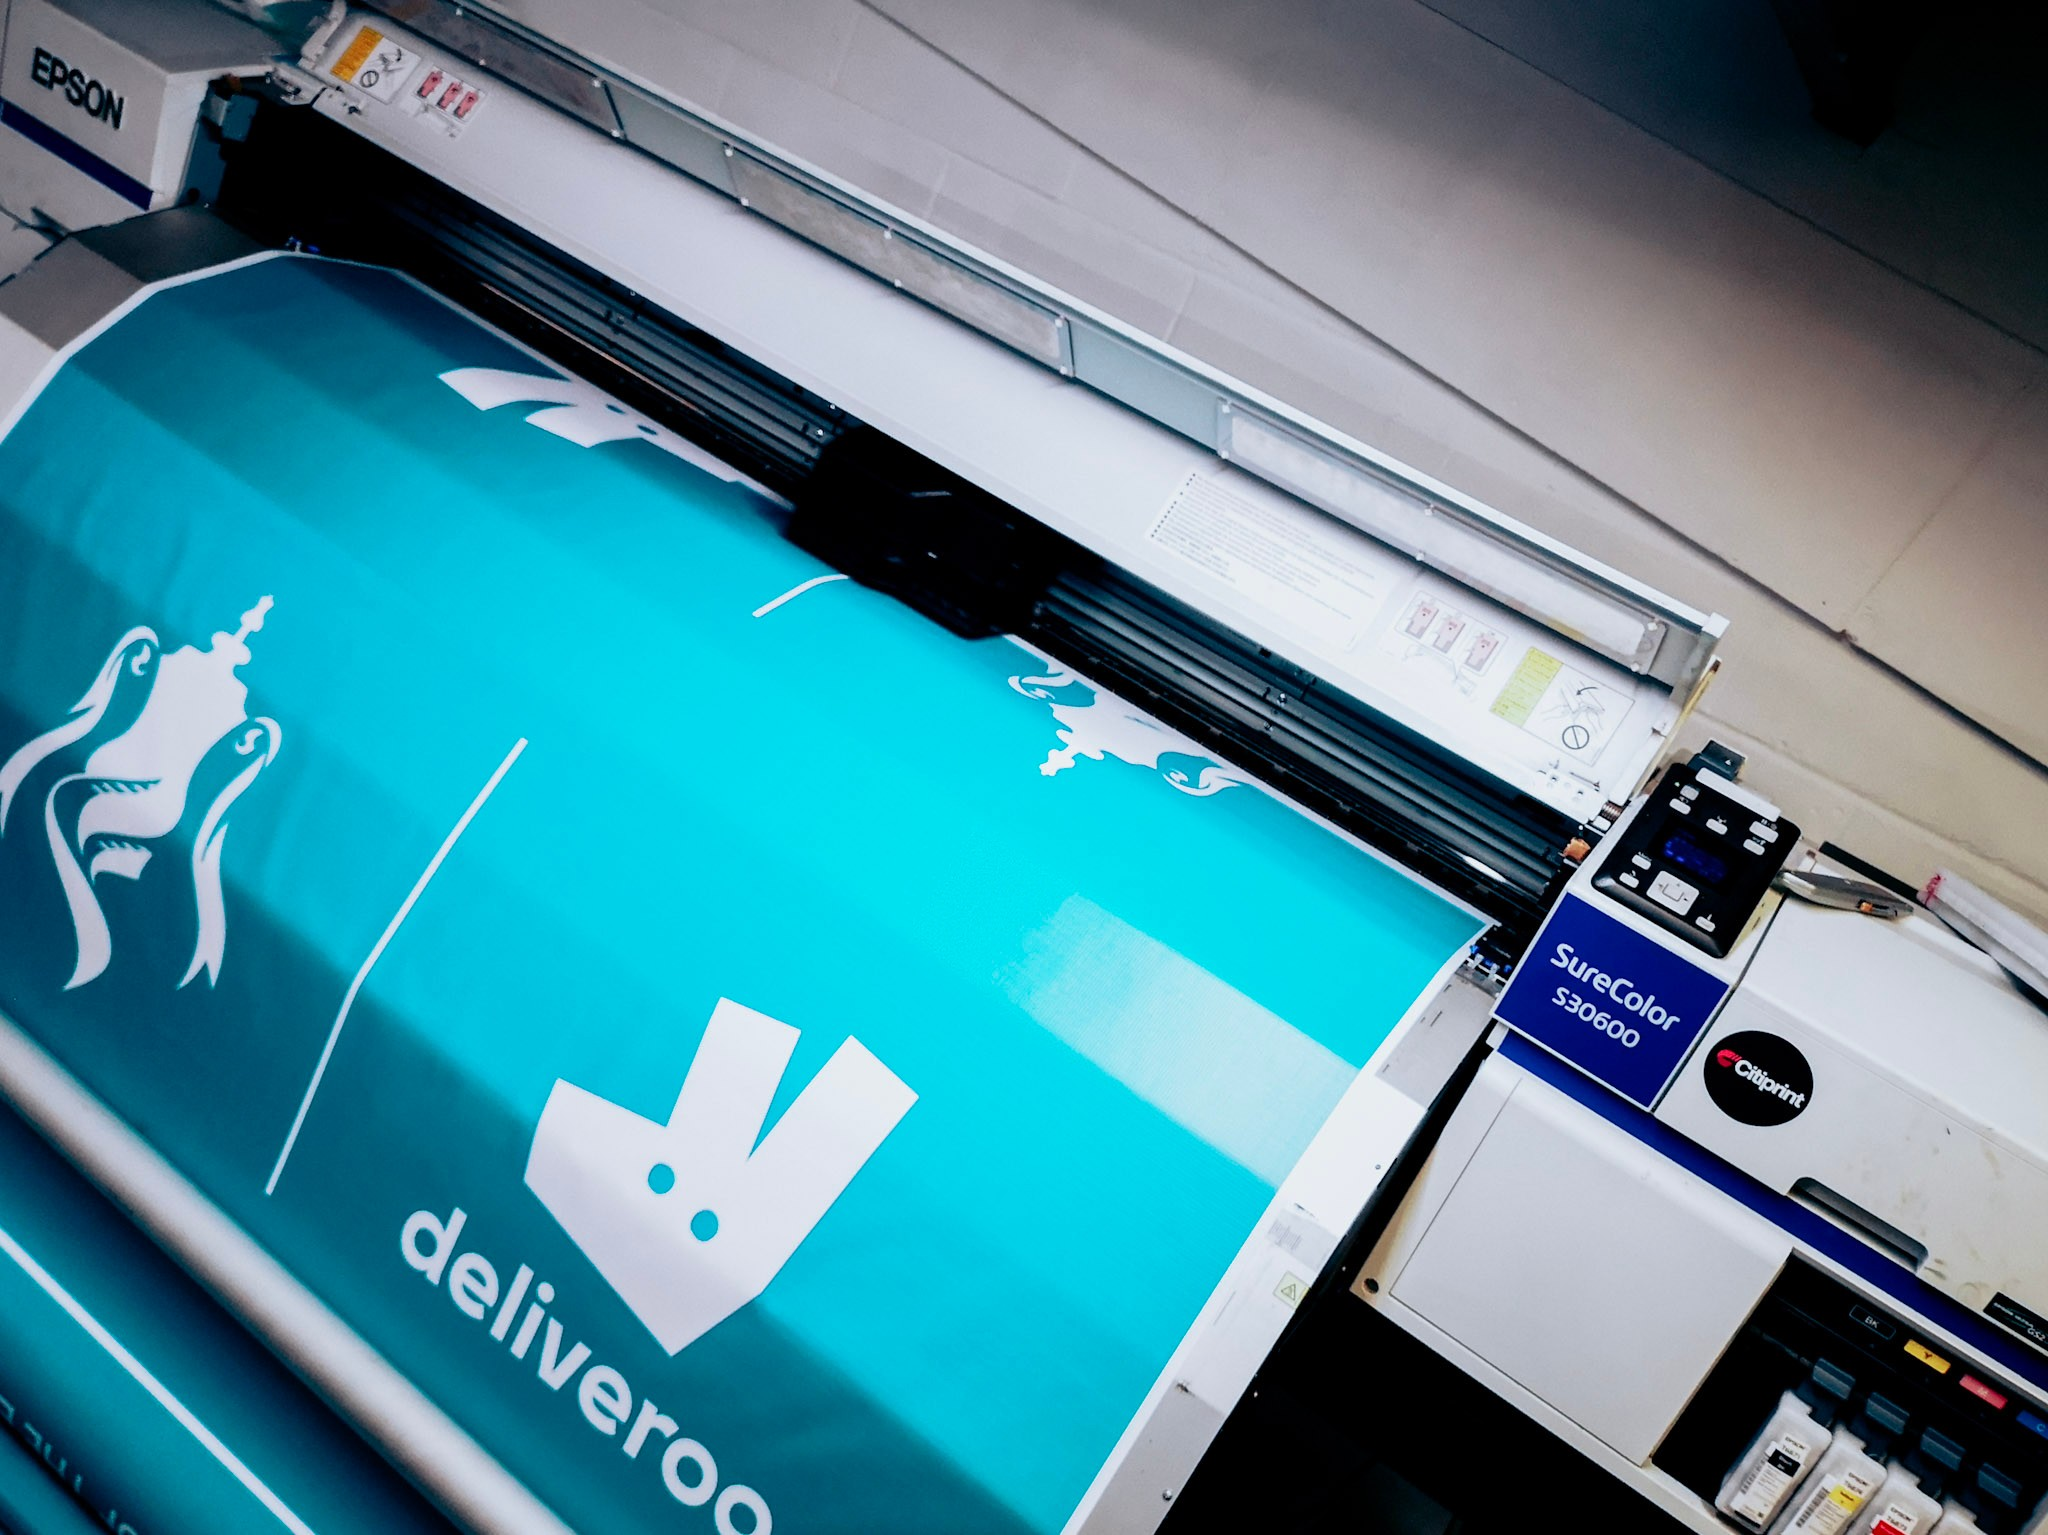 Same Day Vinyl Printing London by Citiprint